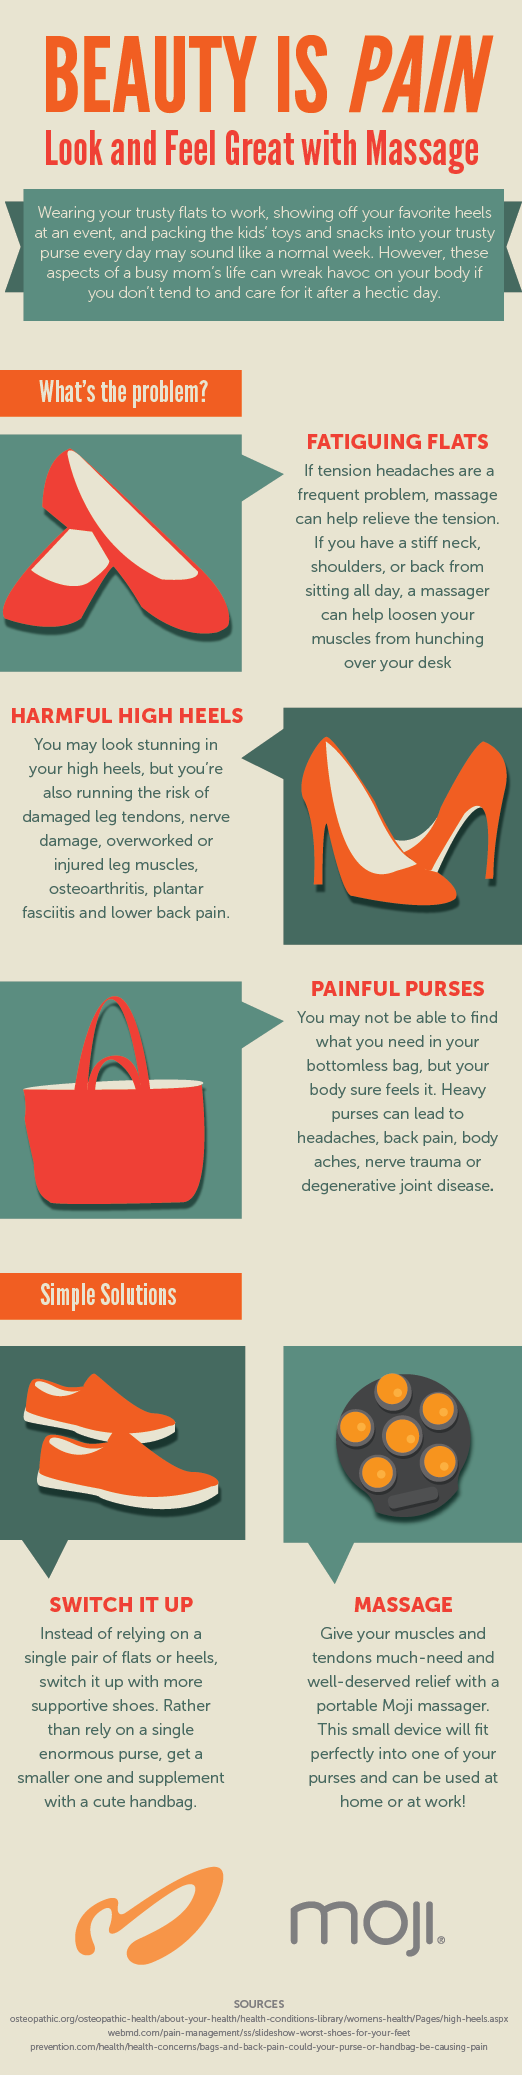 Moji infographic on beauty is pain.